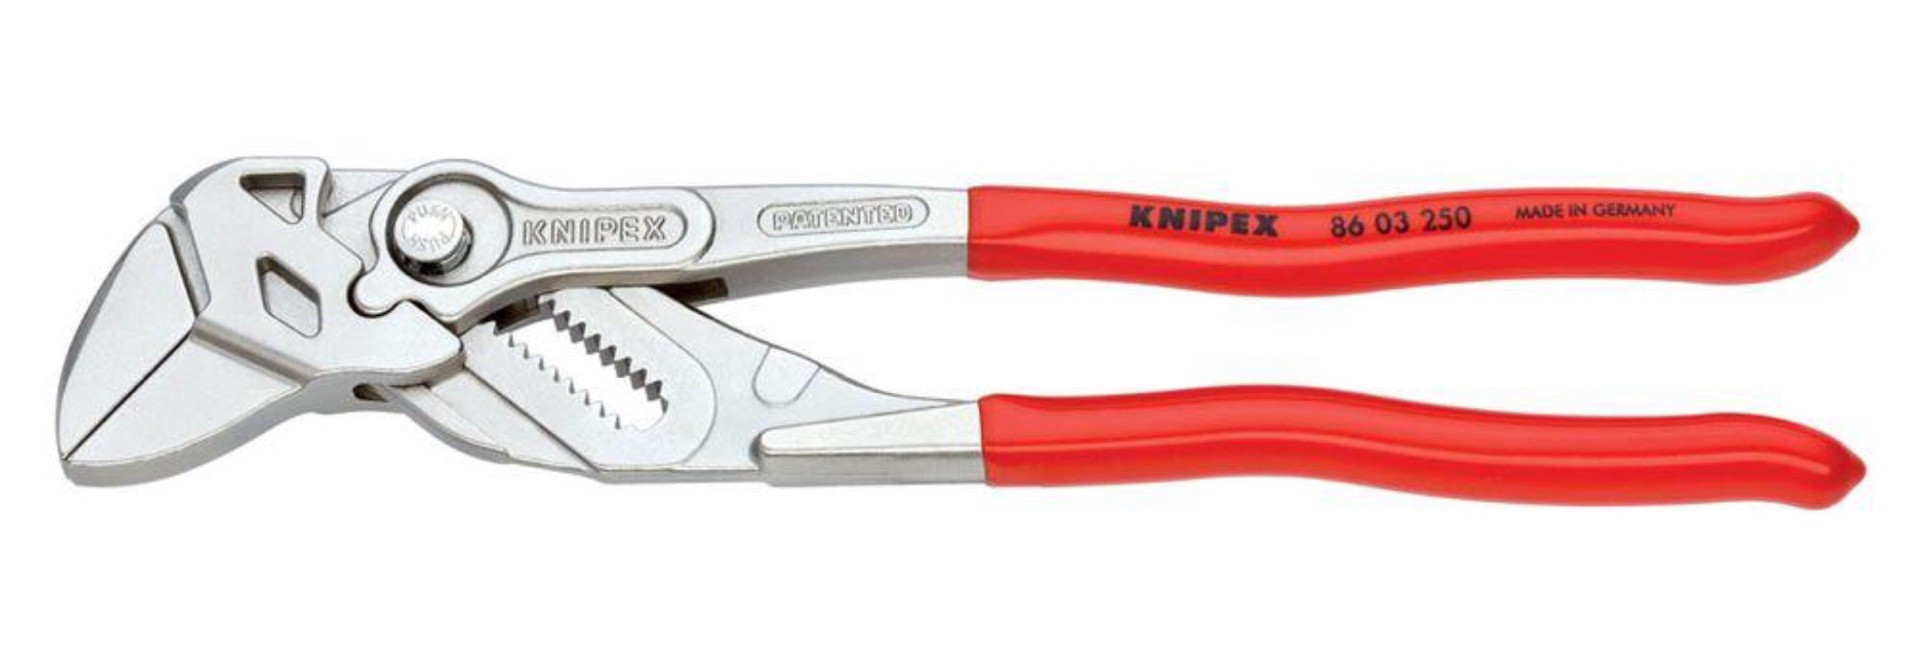 """Knipex 10"""" pliers wrench. ($54)"""